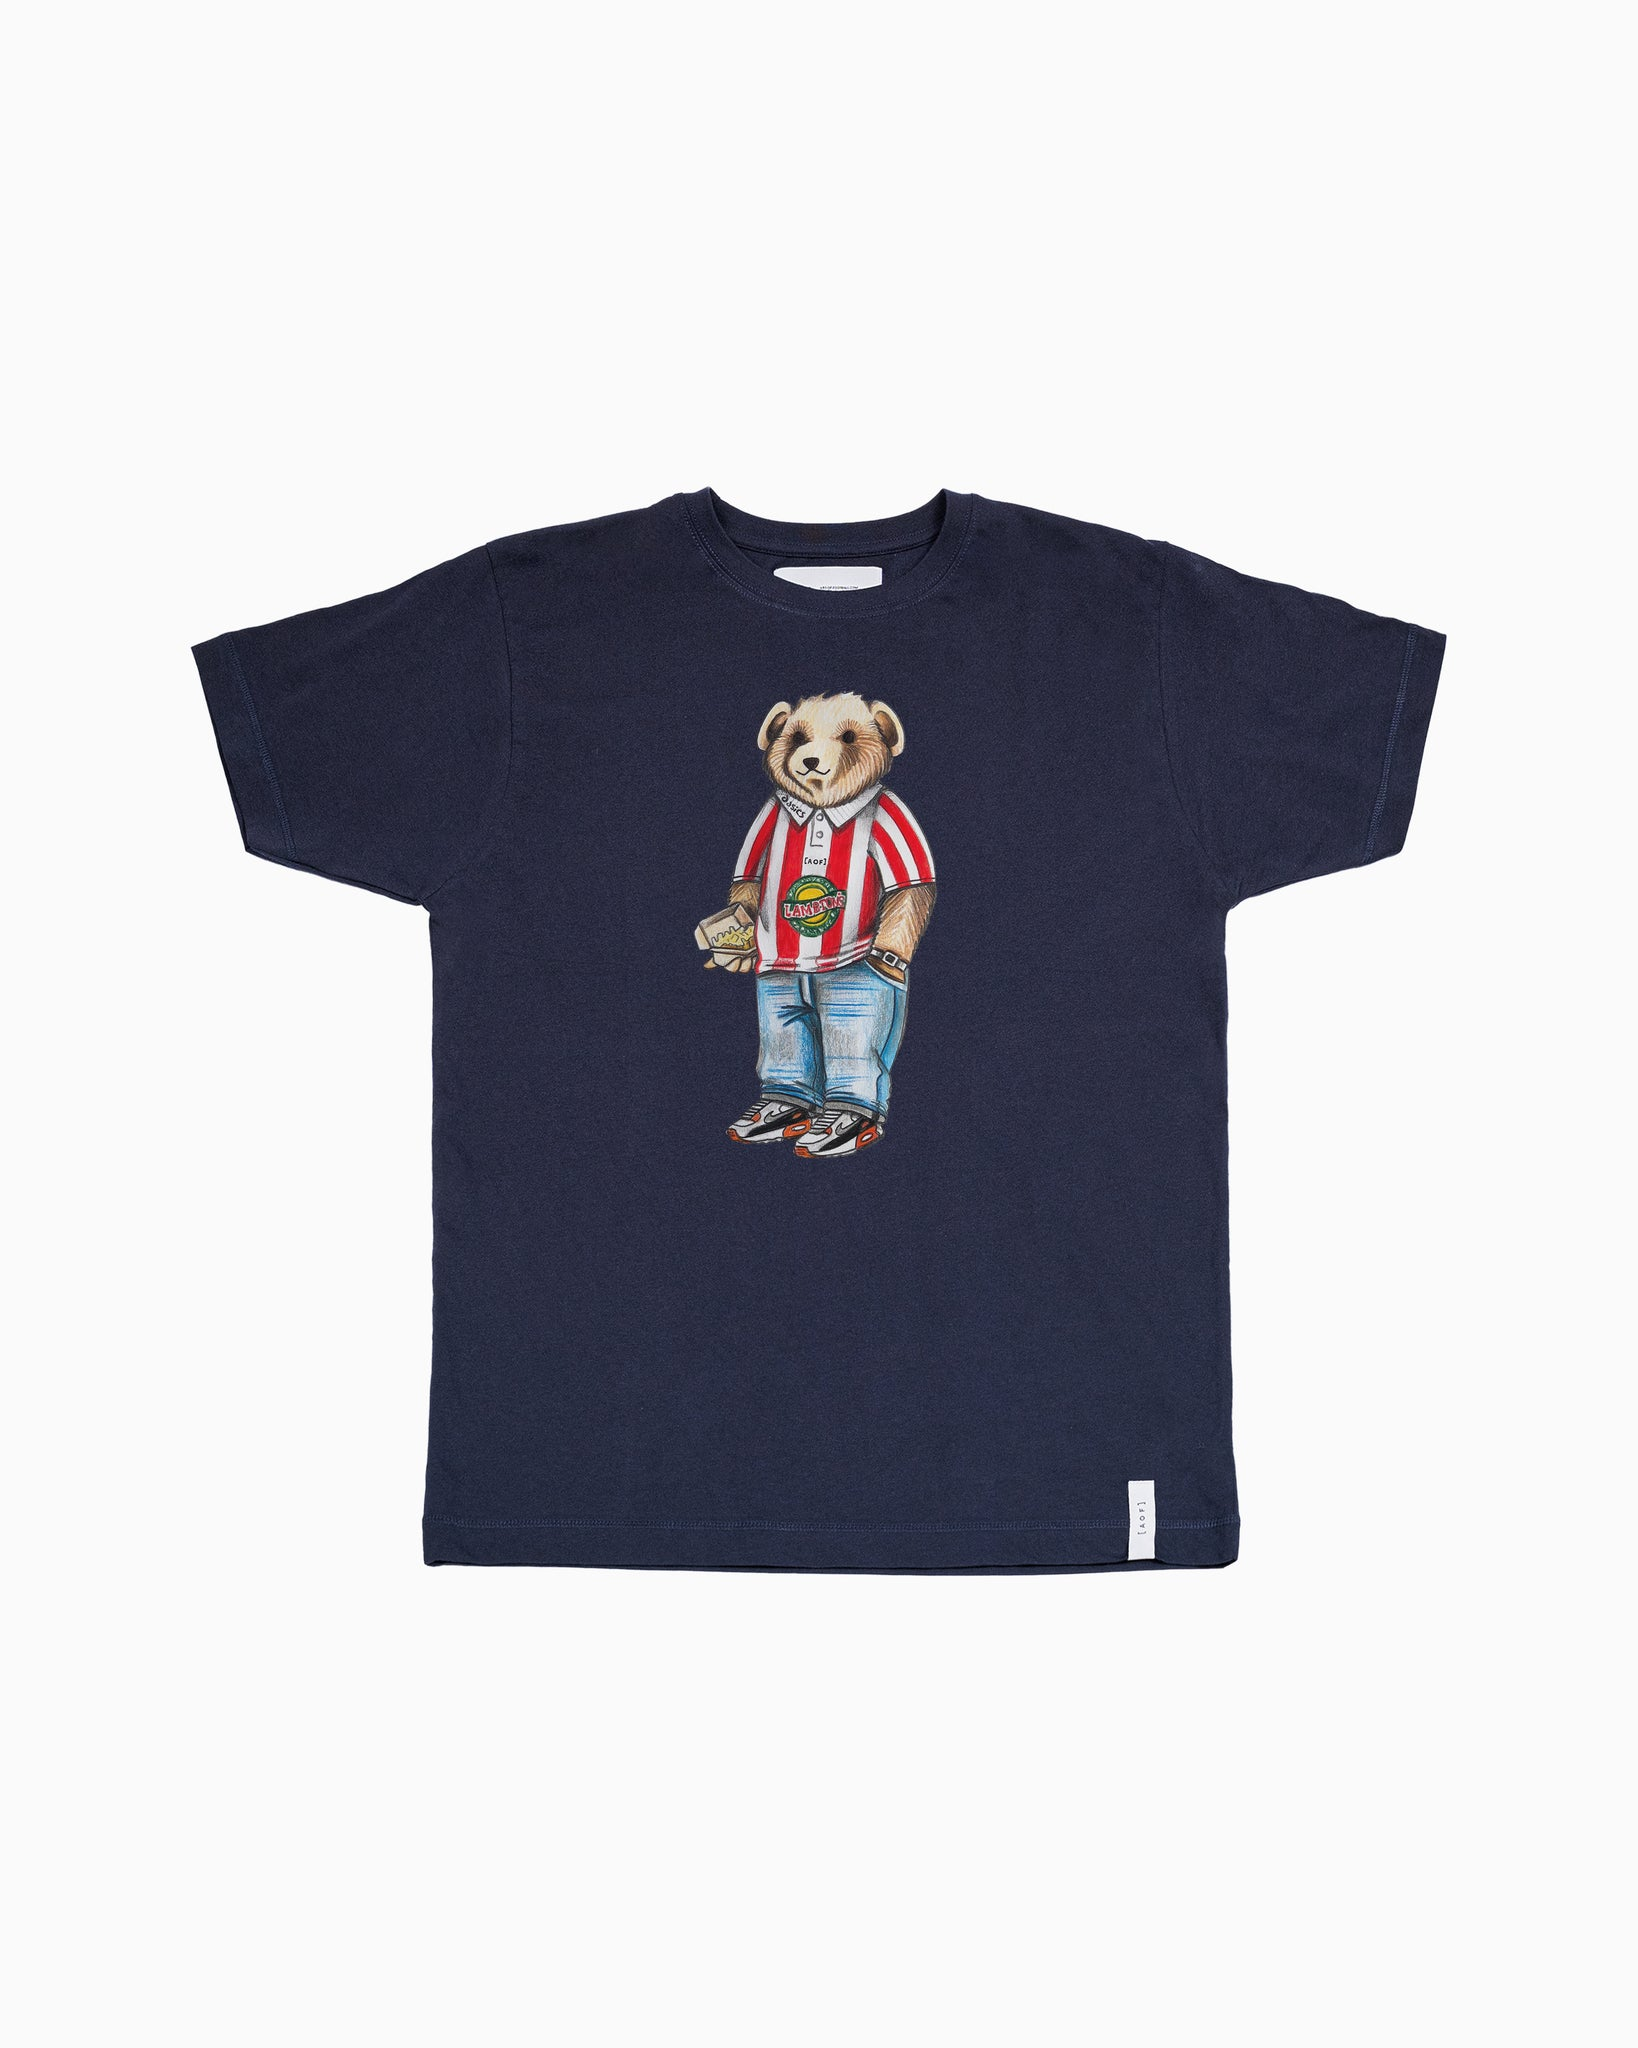 Mackem Pickles - Sunderland Tee or Sweat